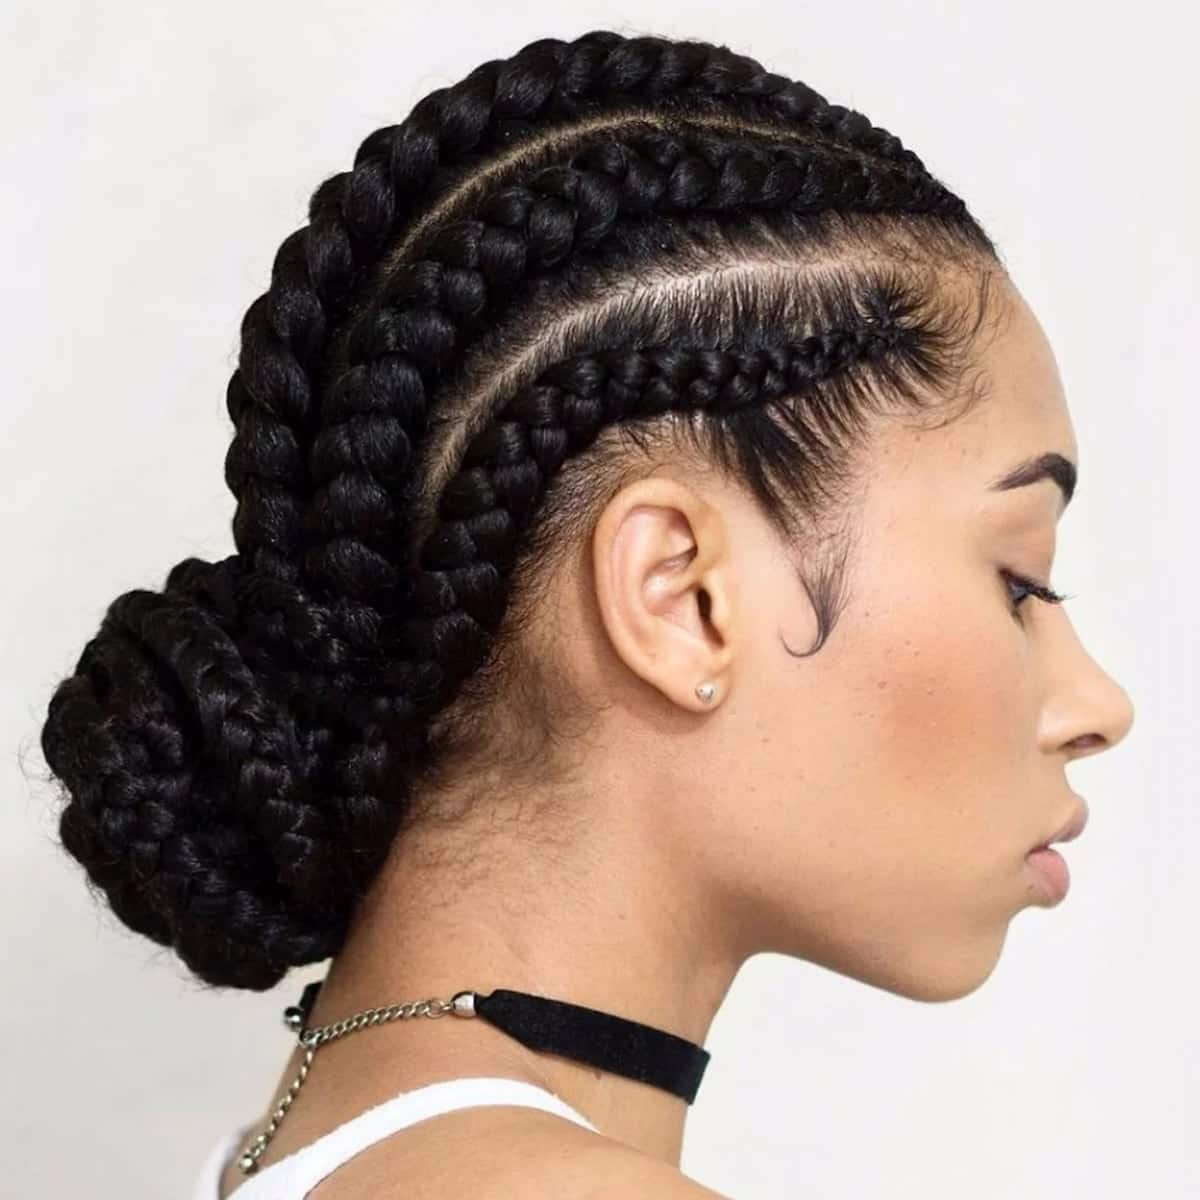 hair style african types of braids and braids hairstyles in yen gh 4941 | 3o3bpd3dags09m7ob